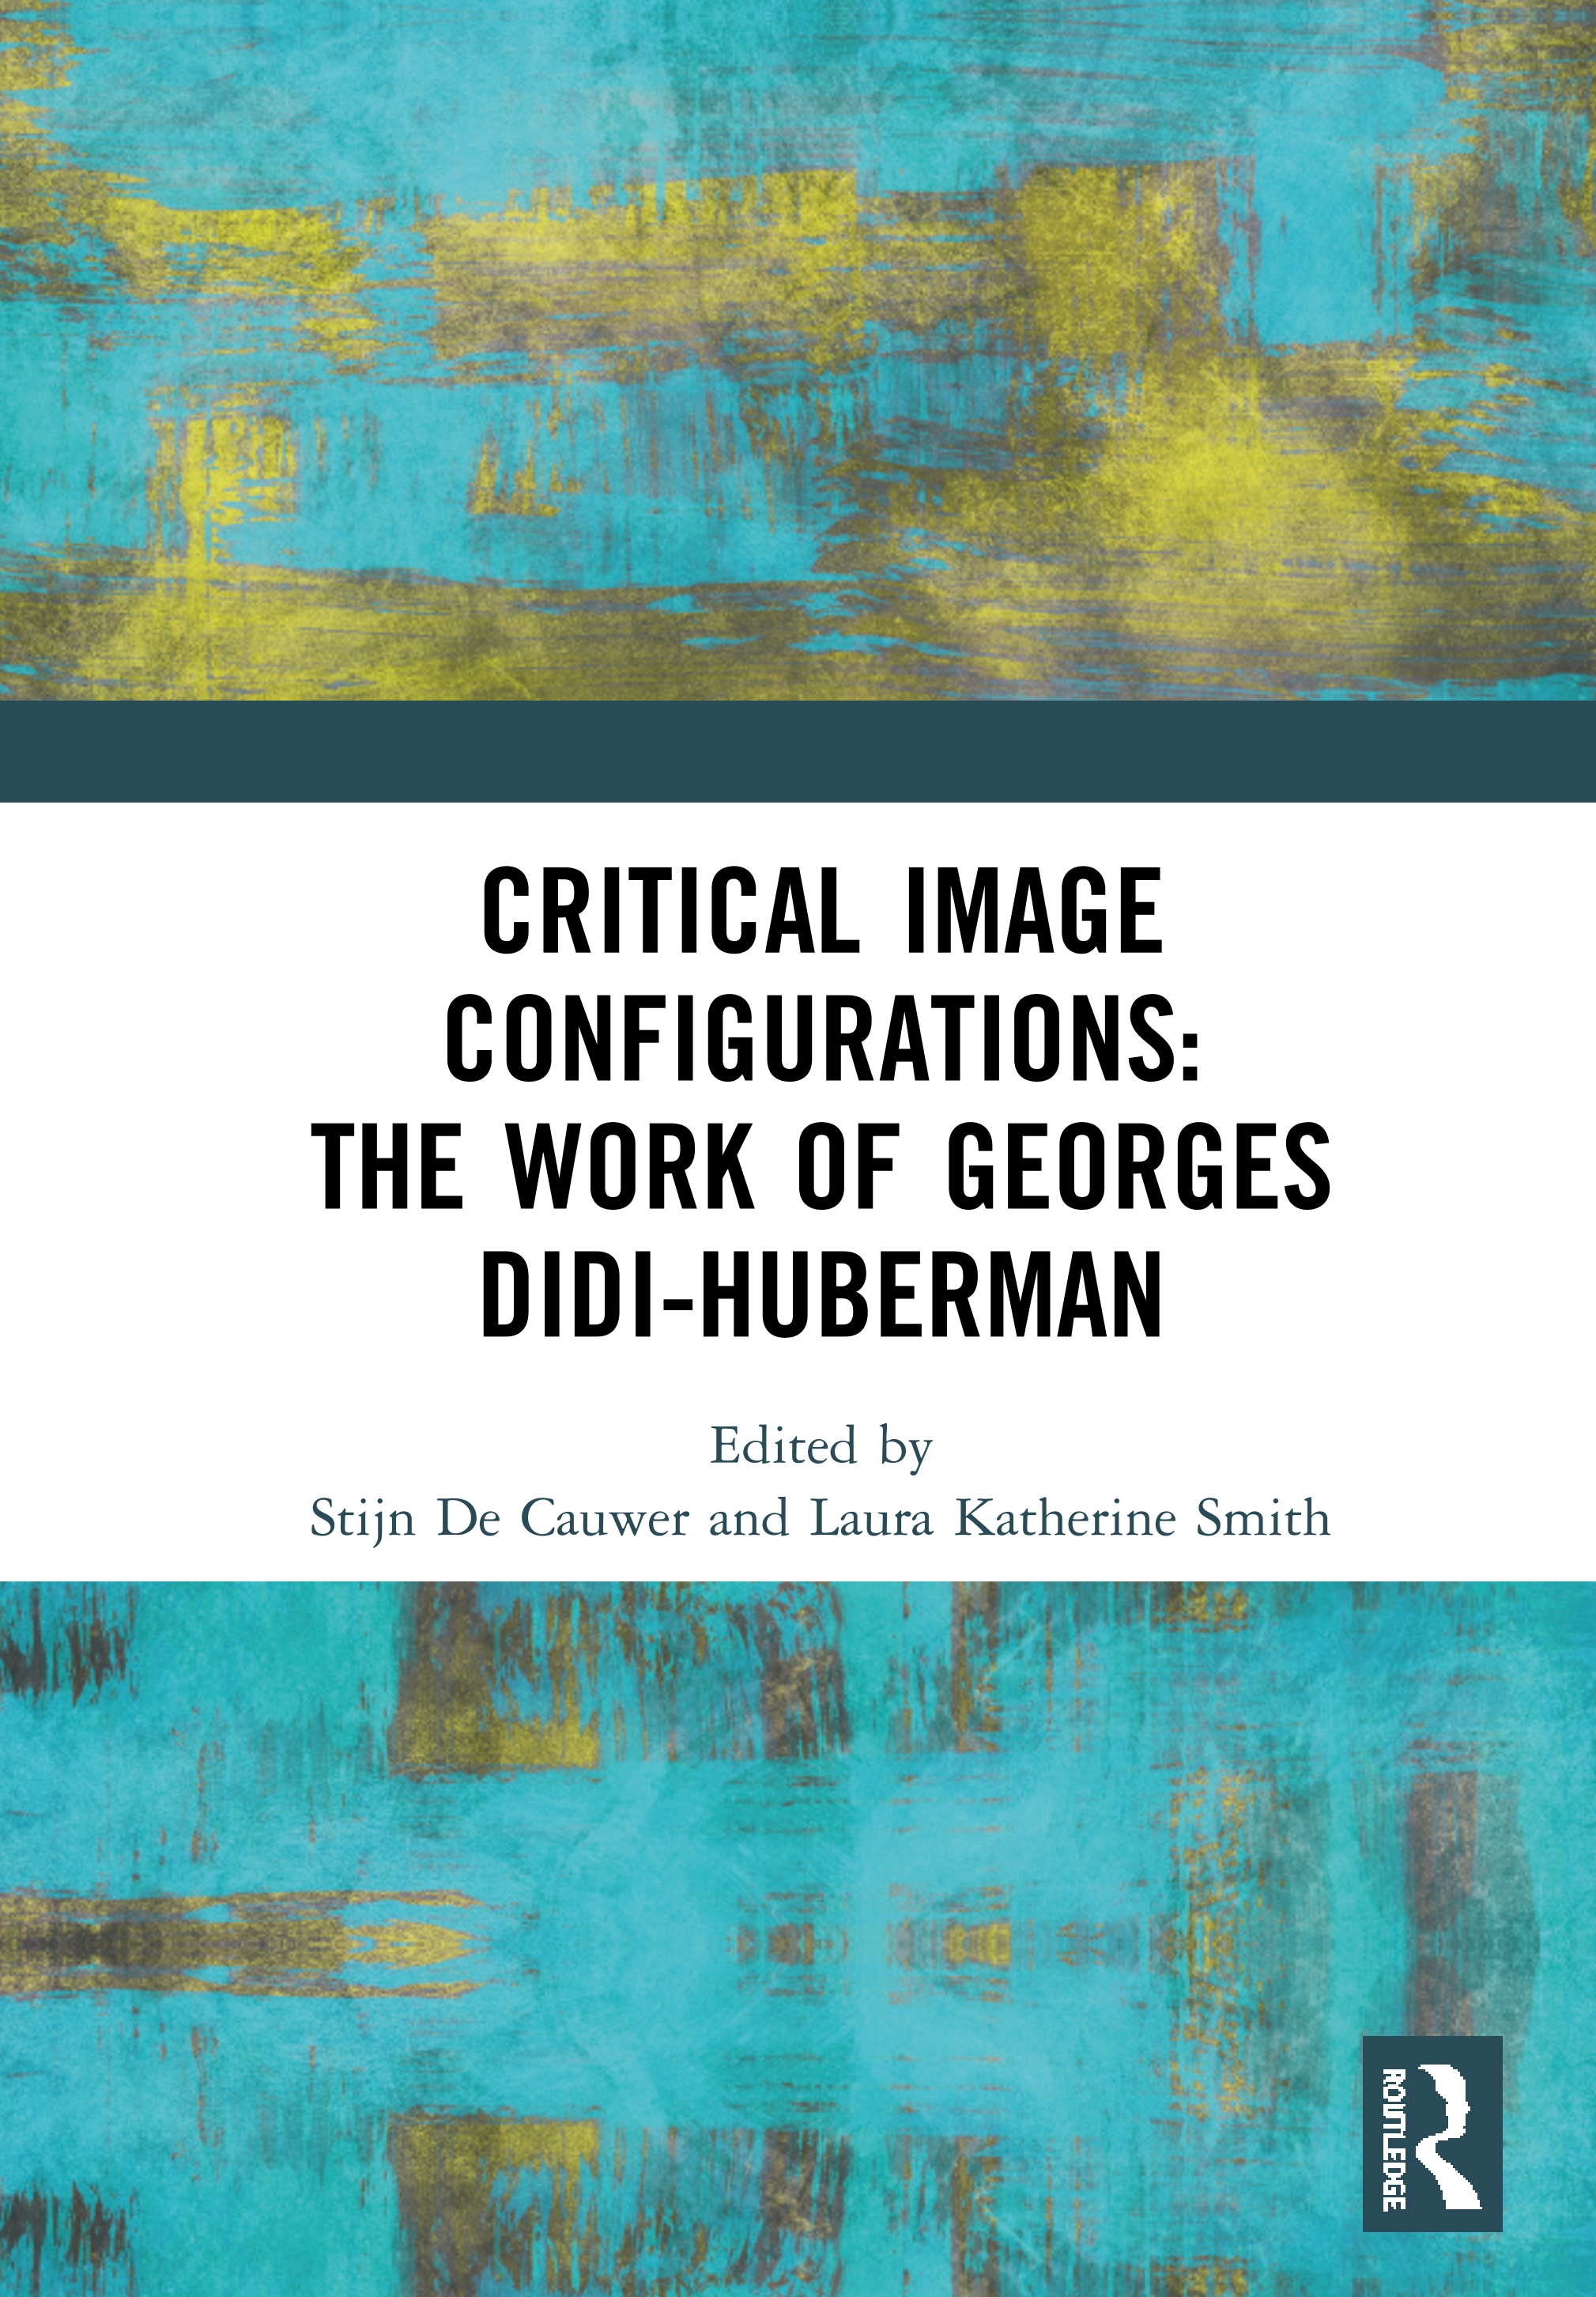 Critical Image Configurations: The Work of Georges Didi-Huberman: The Work of Georges Didi-Huberman book cover